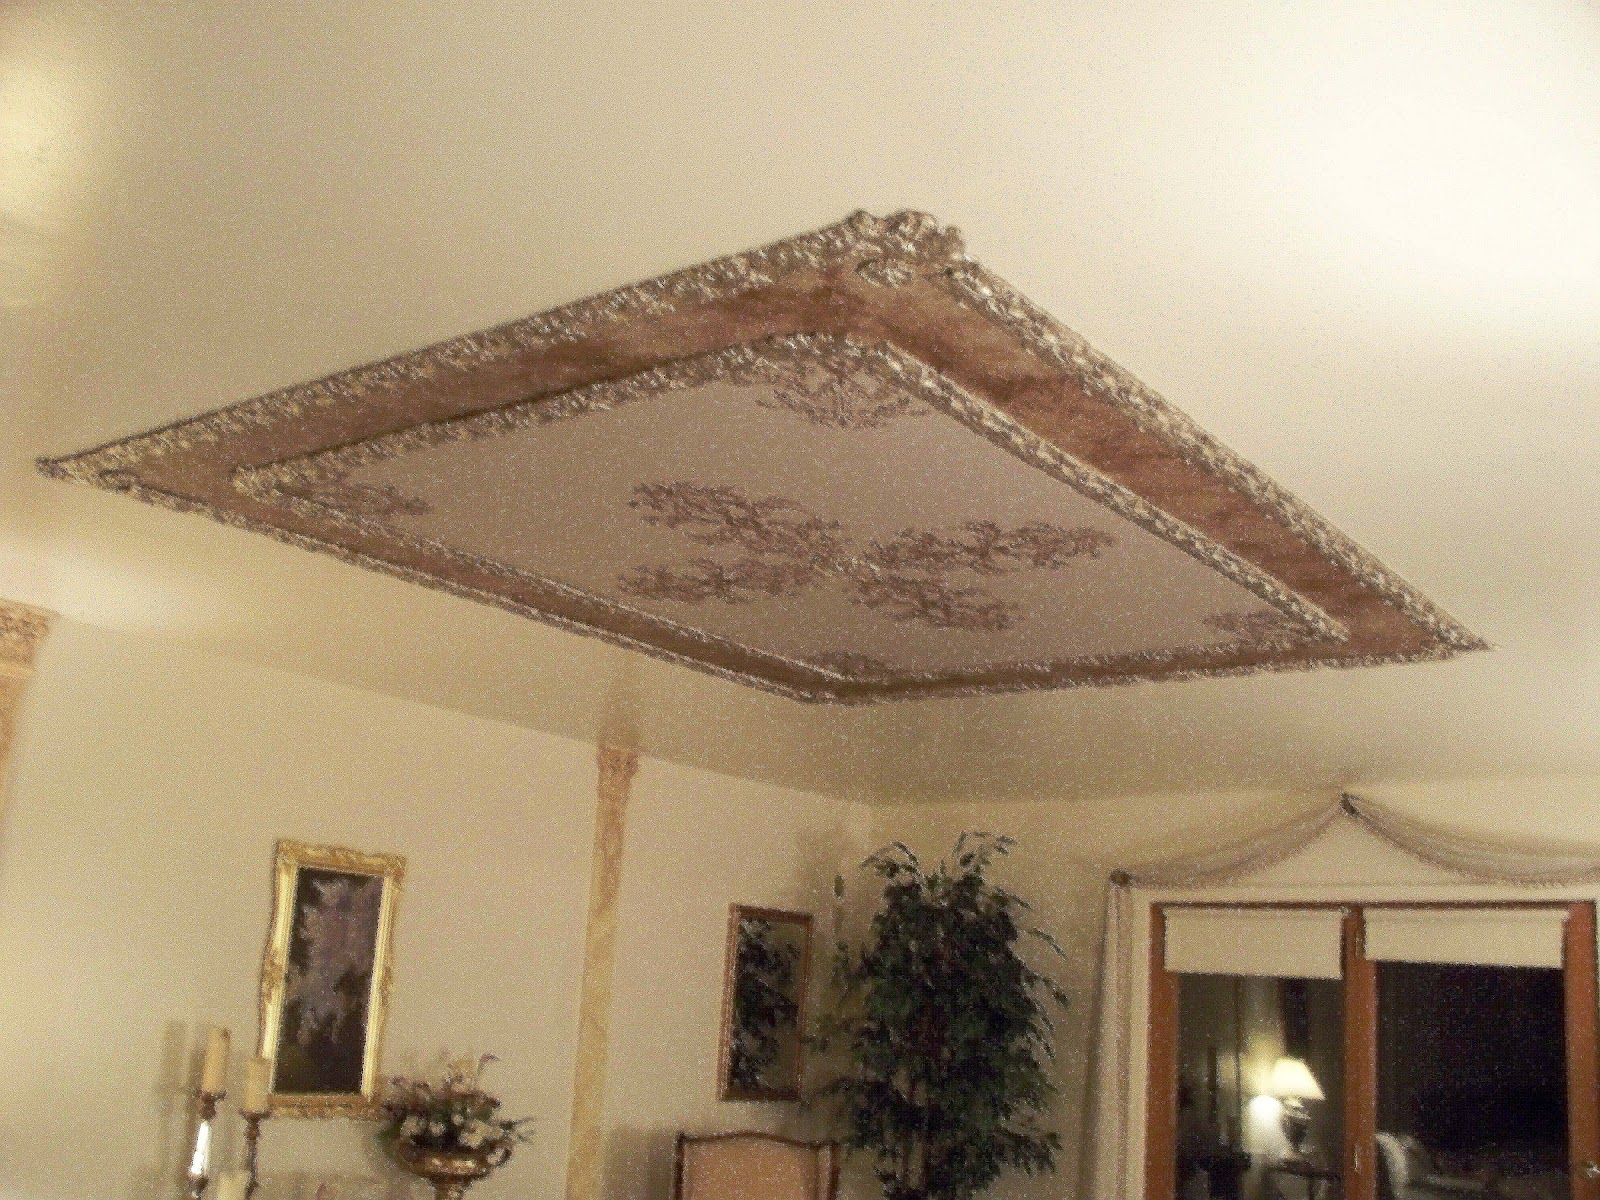 Victoria larsen 39 s decorating with class april 2012 for Raised bedroom ceiling